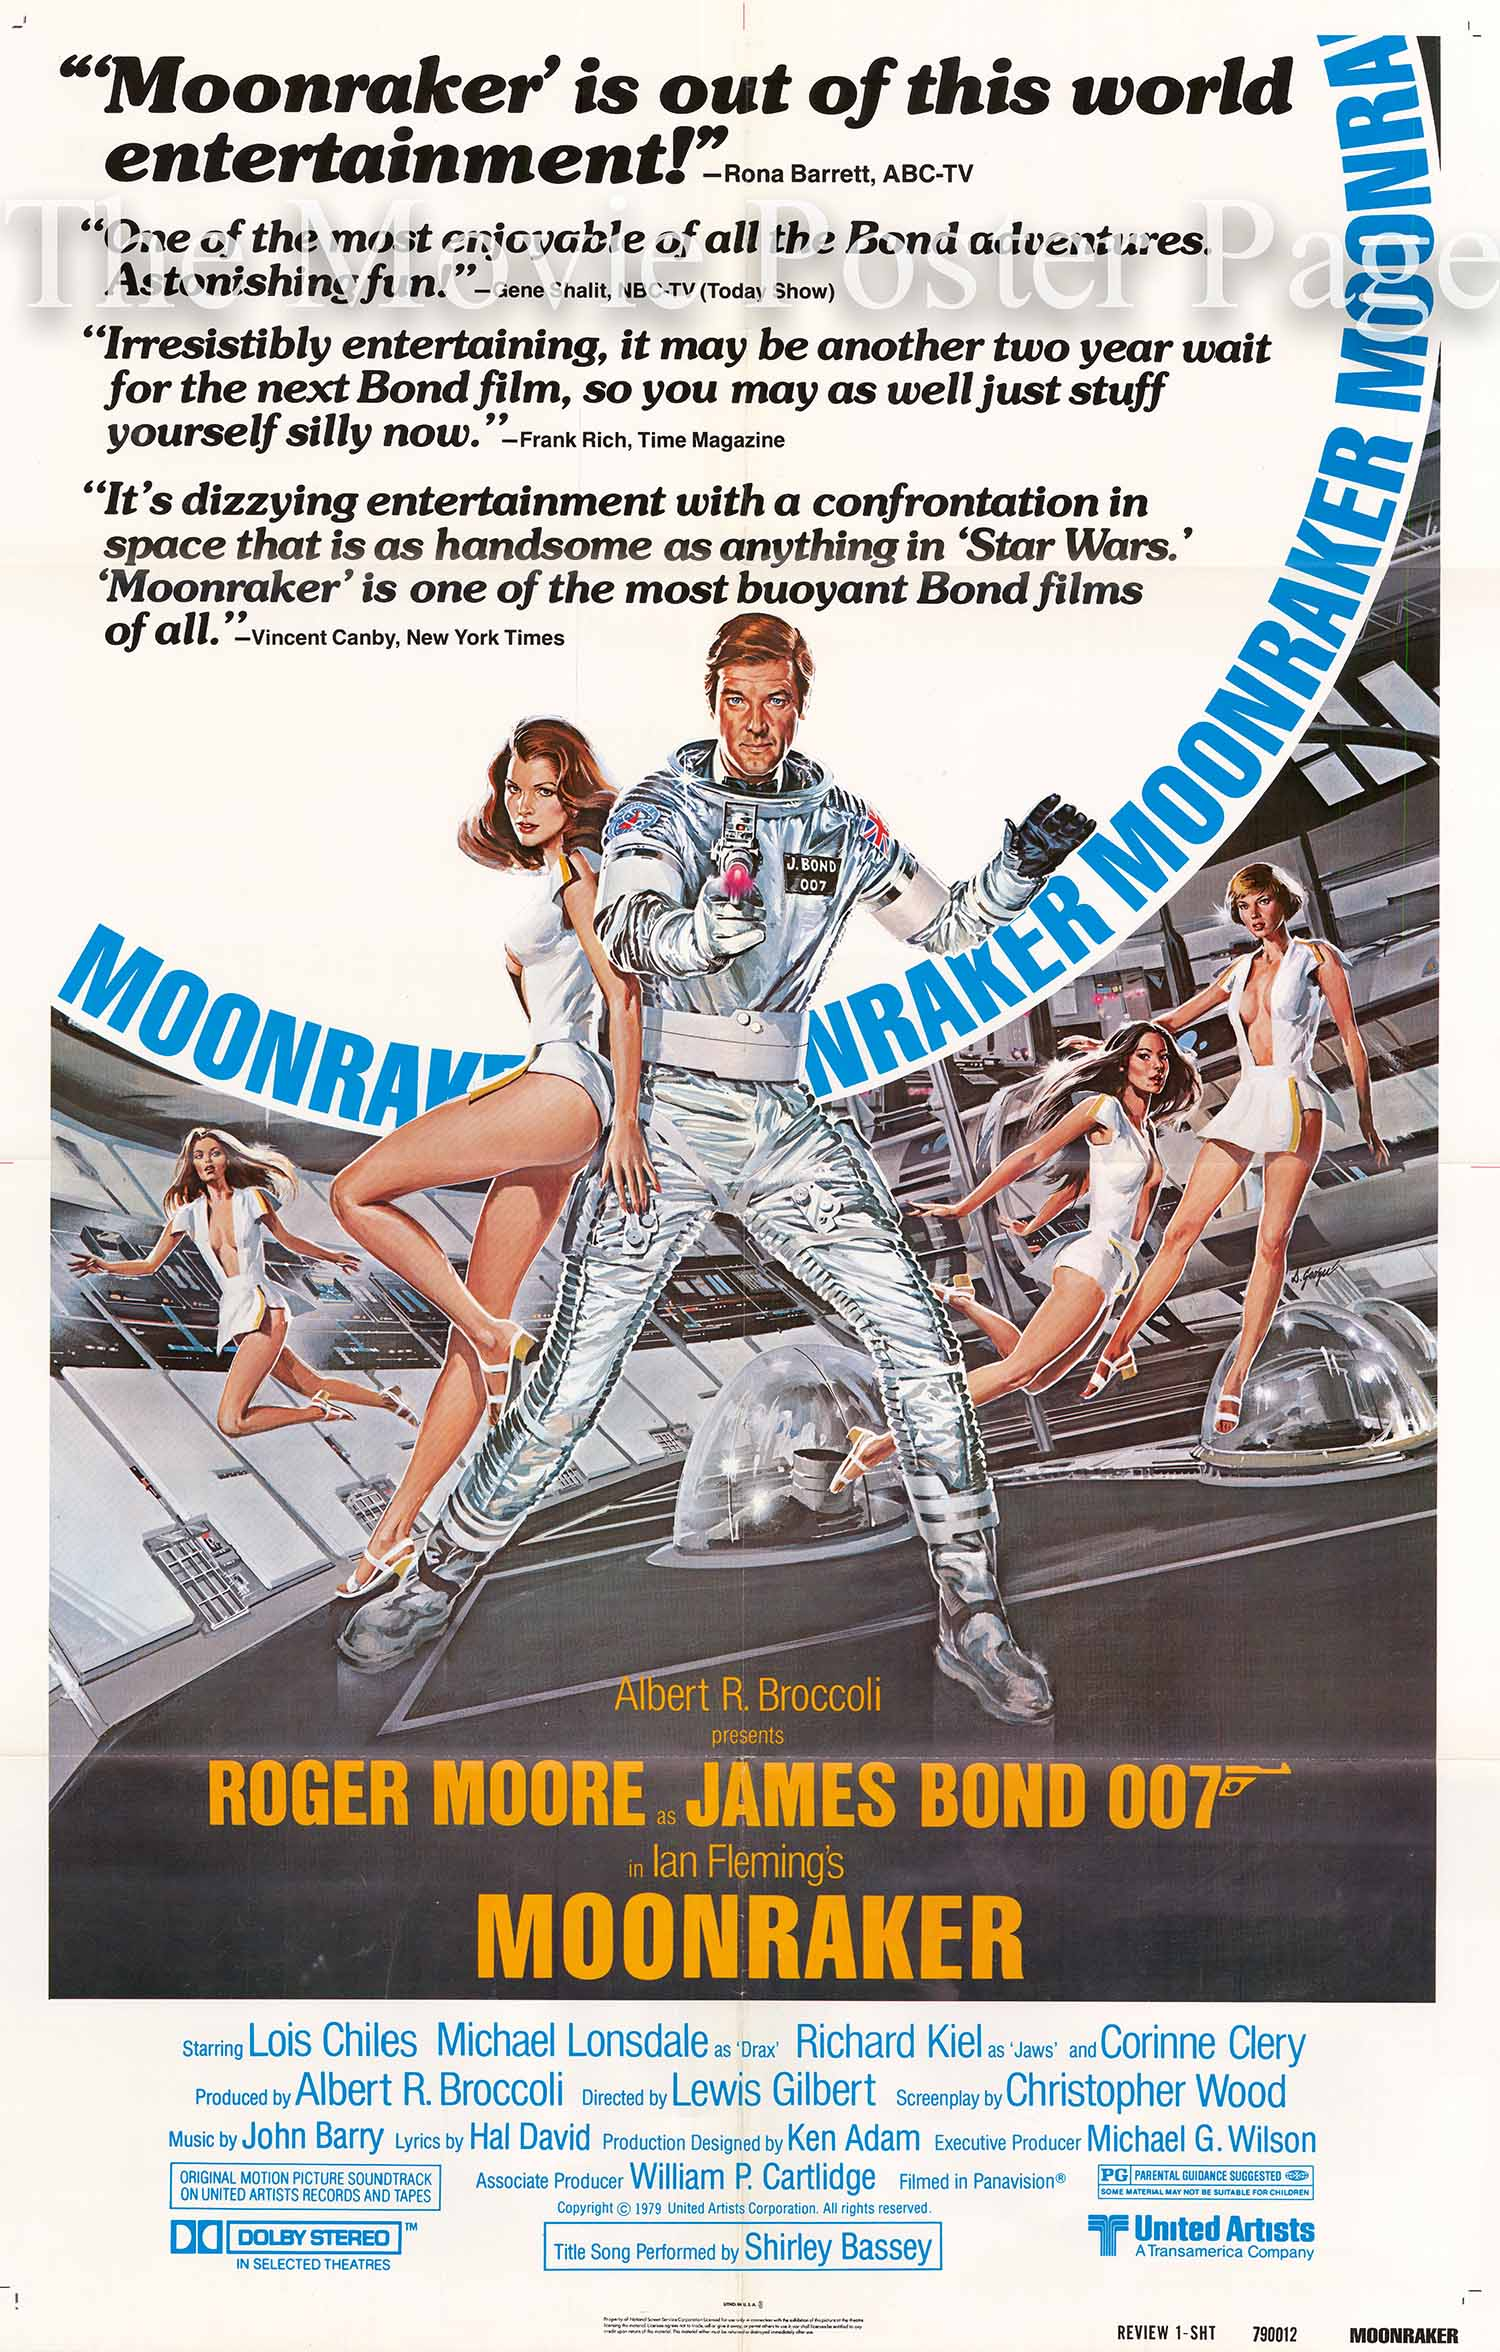 Pictured is a US one-sheet reviews poster for the 1979 Lewis Gilbert film Moonraker starring Roger Moore as James Bond.